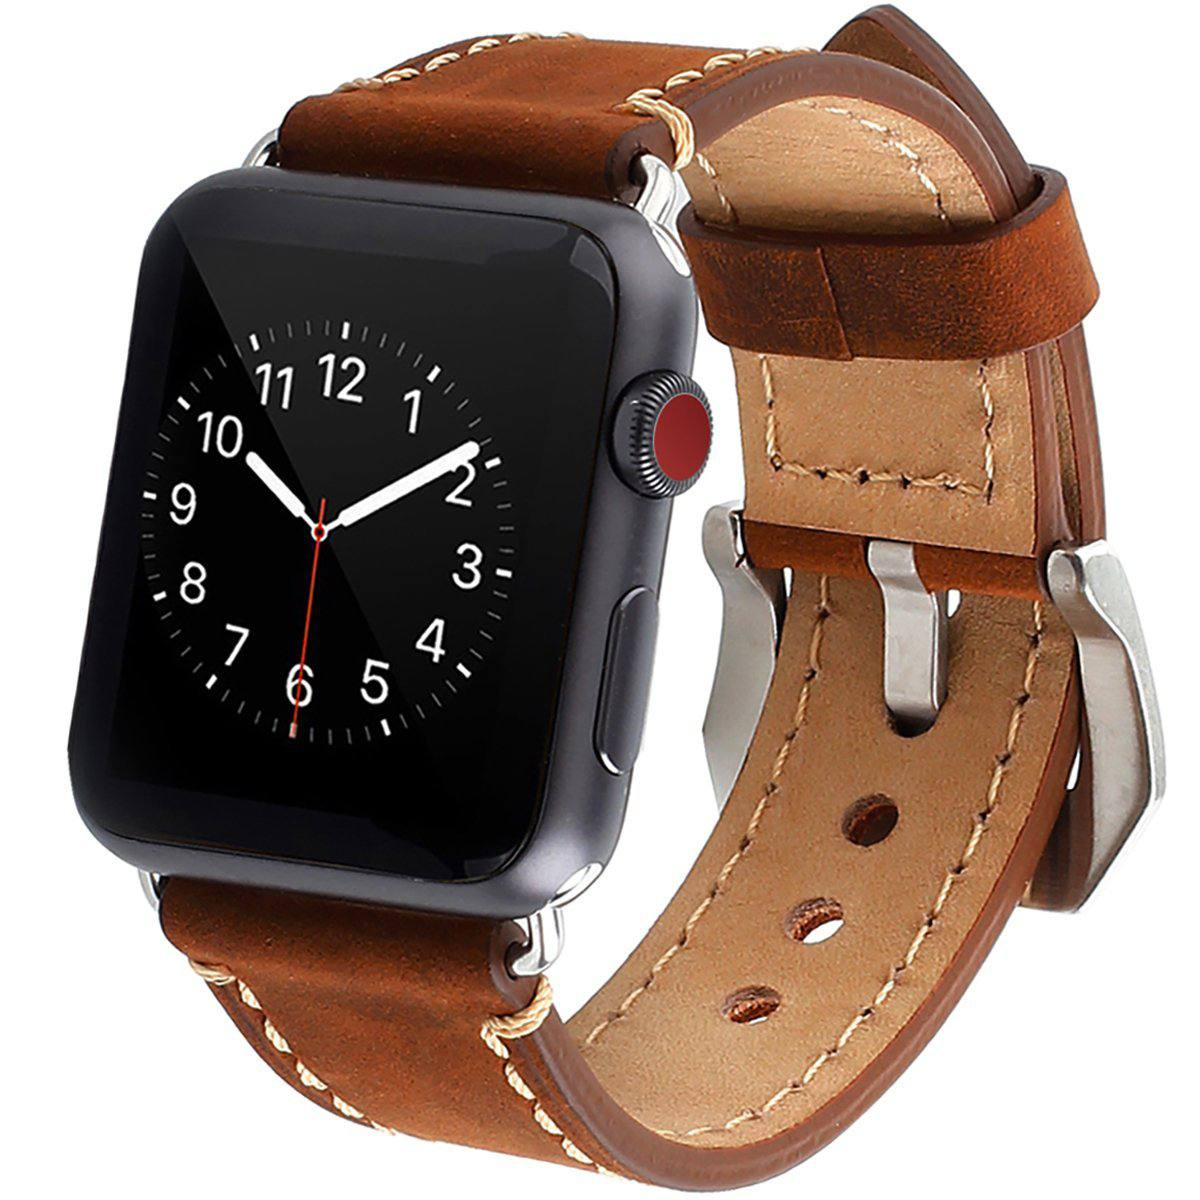 859ce3ff0 Apple Watch Band, iWatch Band Strap Premium Vintage Genuine Leather  Replacement Watchband with Secure Metal